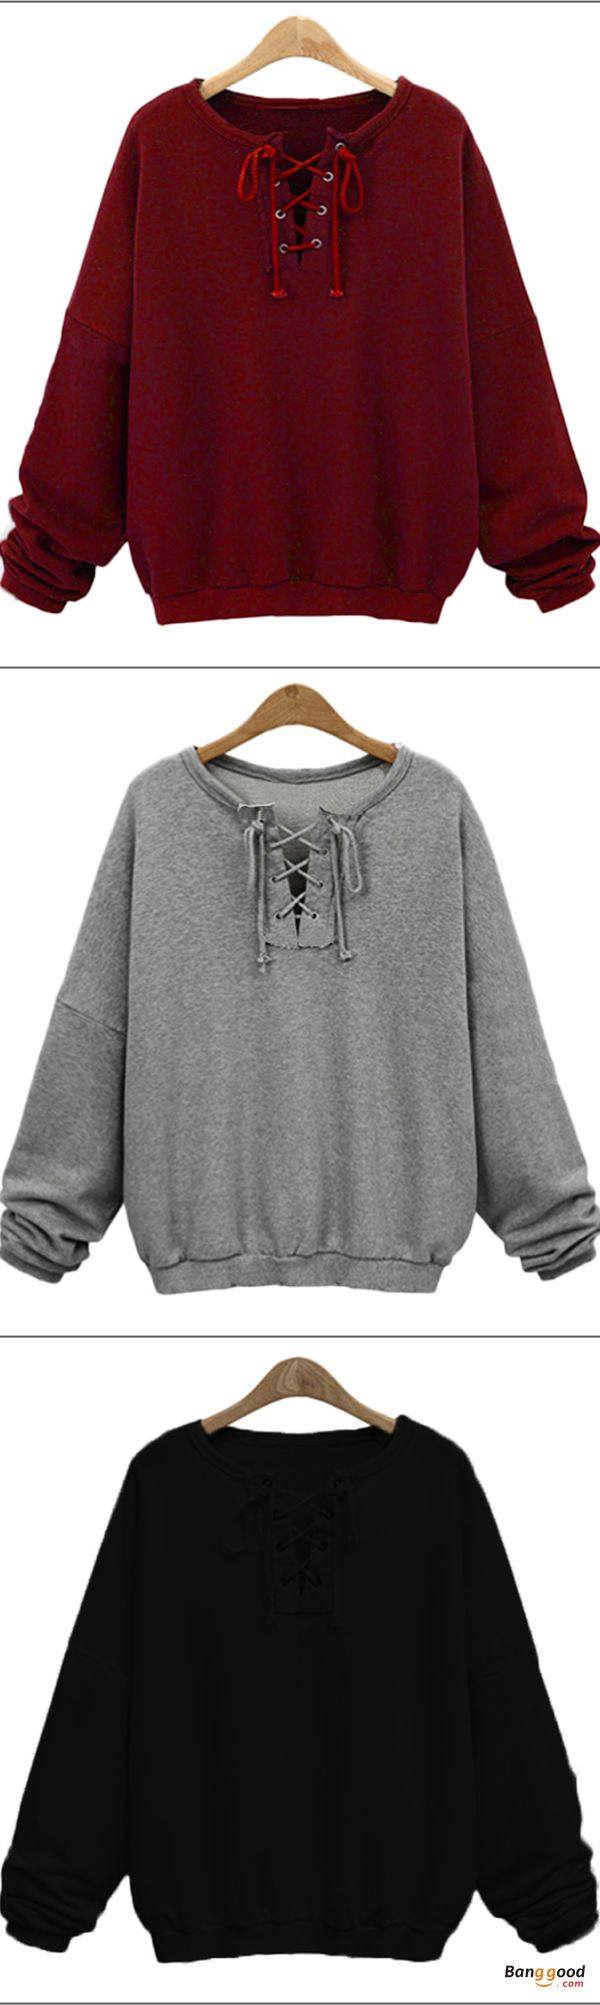 US$26.59 + Free shipping. Size: M~5XL. Color: Black, Burgundy, Gray. Fall in love with casual and vintage style! Casual Loose Bandage Lace Up Long Sleeve Pure Color Women Hoodies. #sweatshirts #tops #outfit